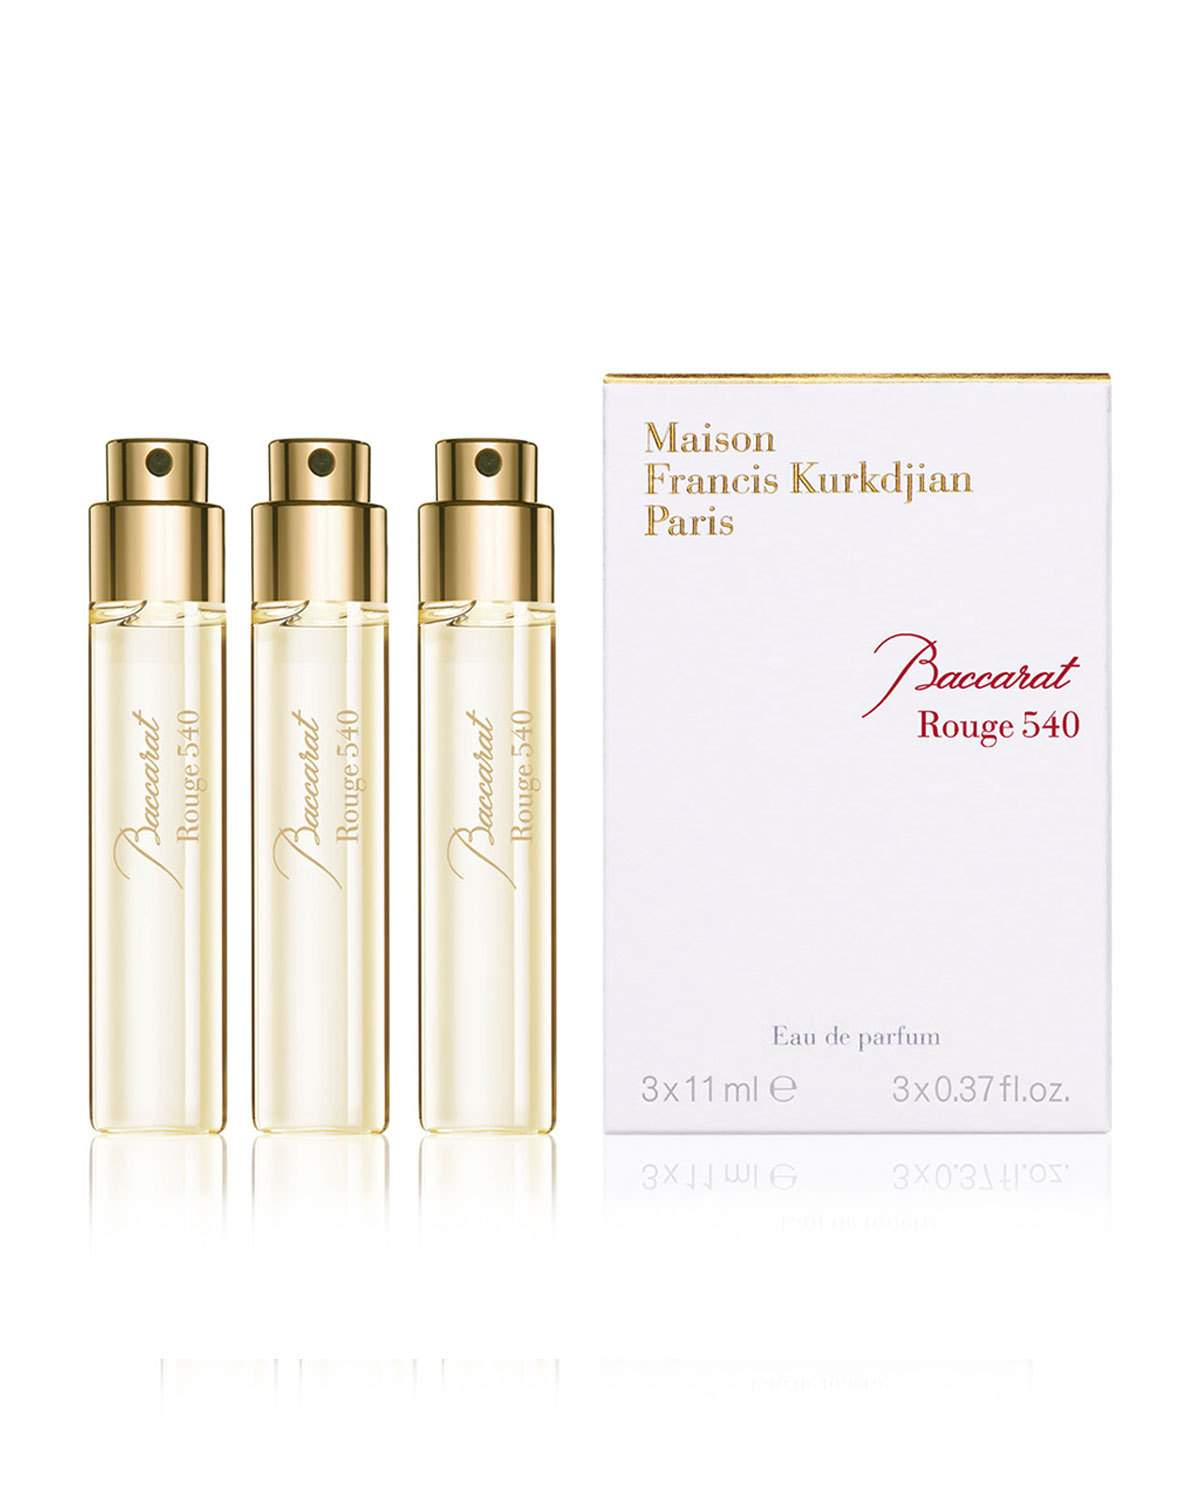 For Women: A Luxe Fragrance Set